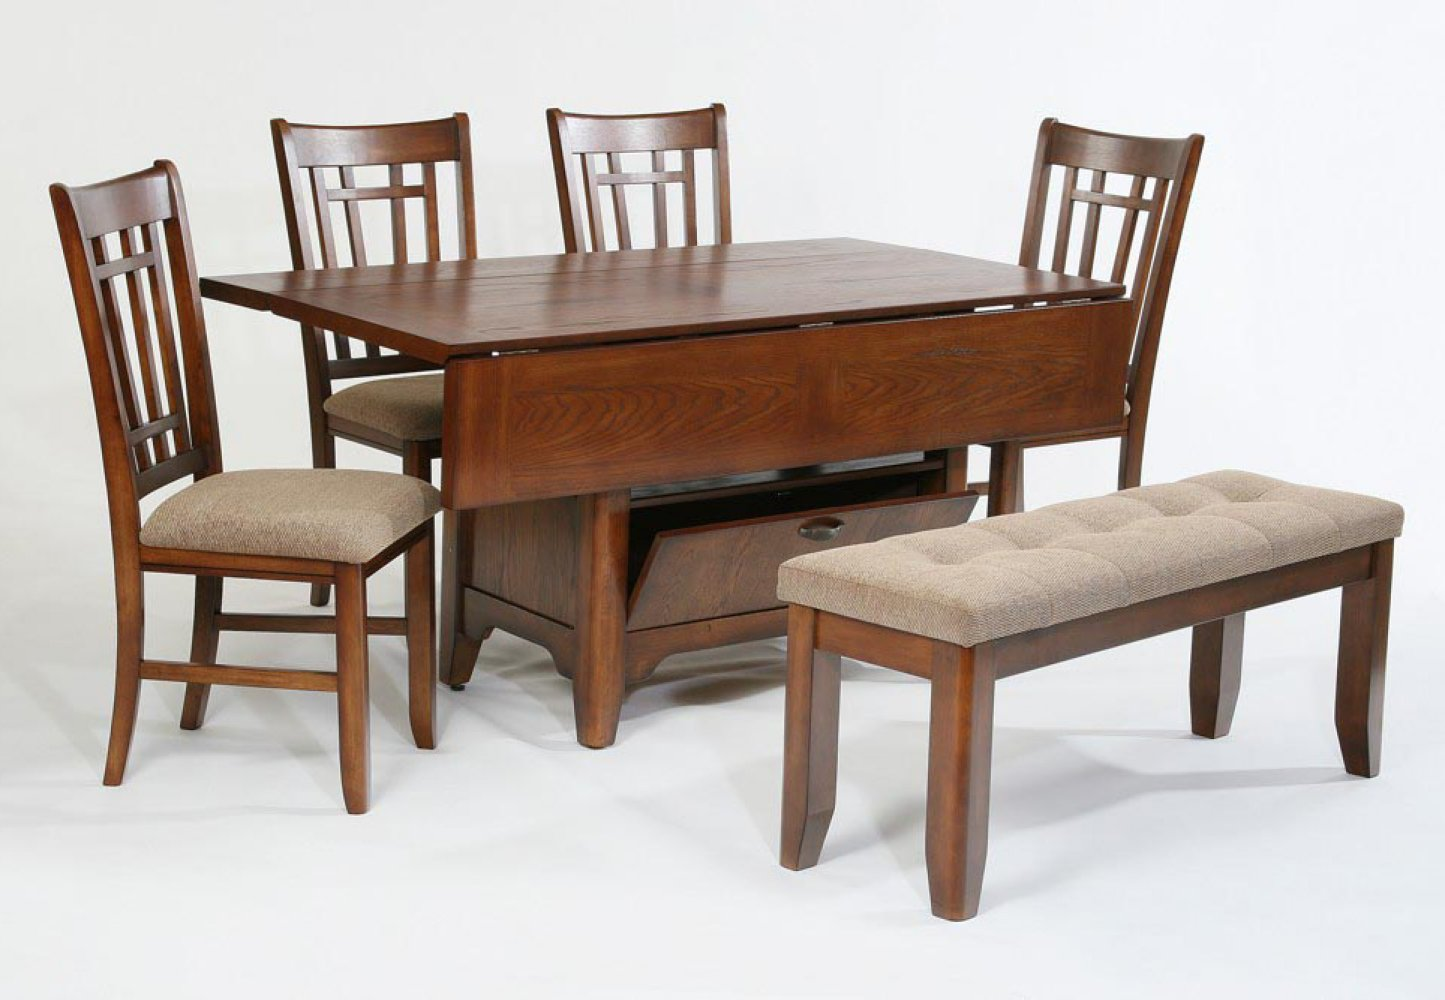 Traditional Wooden Drop Leaf Dining Table Small Spaces Rectangle Shape Bench Comfy Chairs Space Ideas Vintage Room